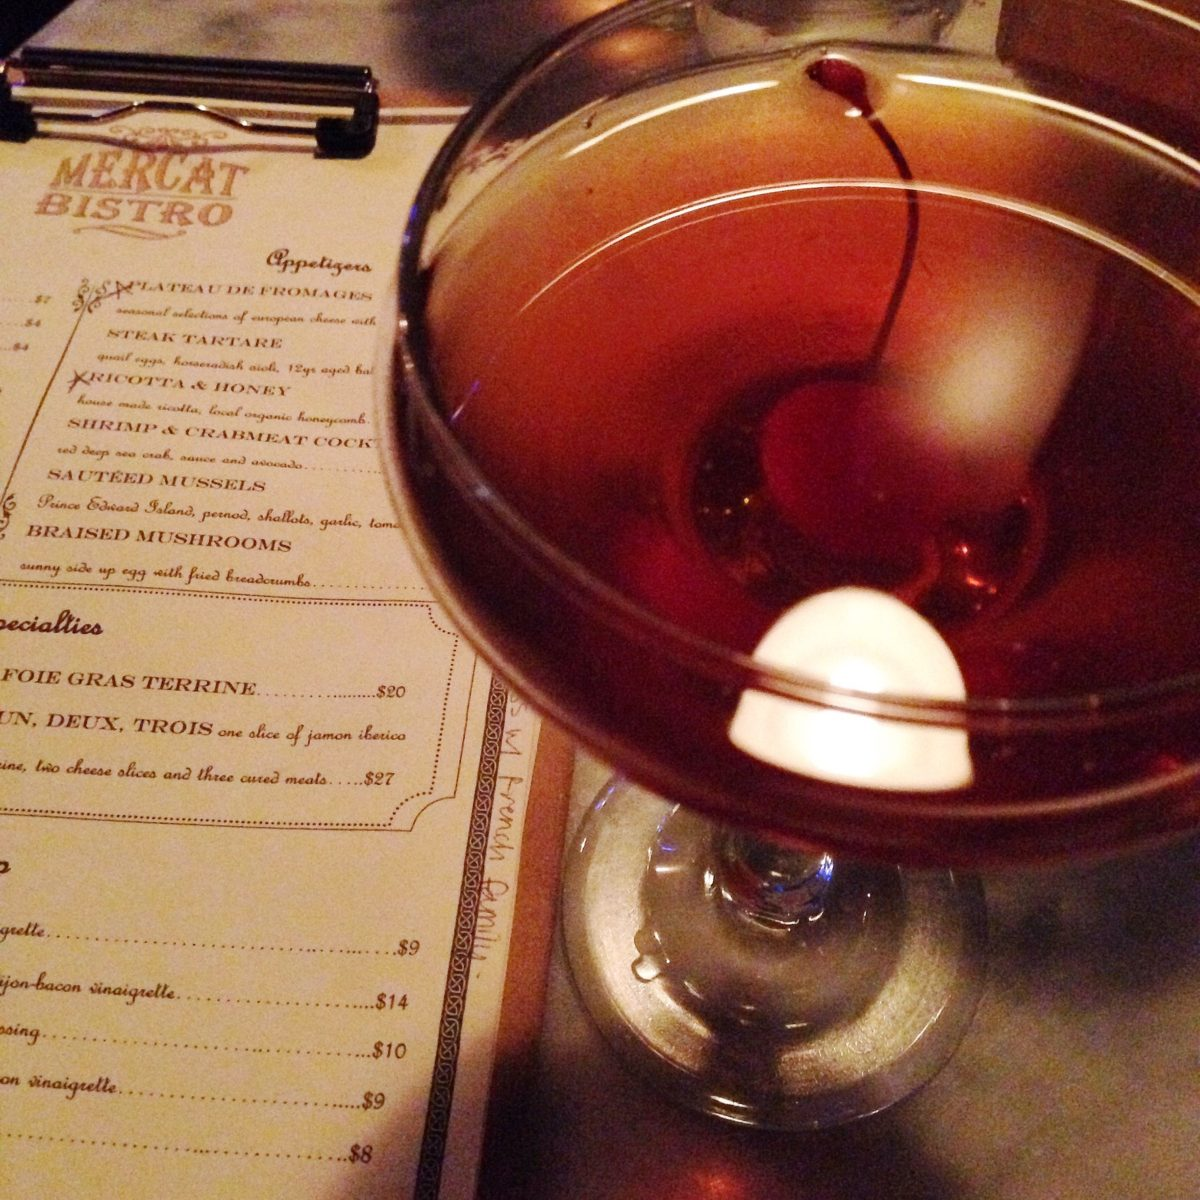 Manhattan cocktail (Texas whiskey, vermouth, bitters)